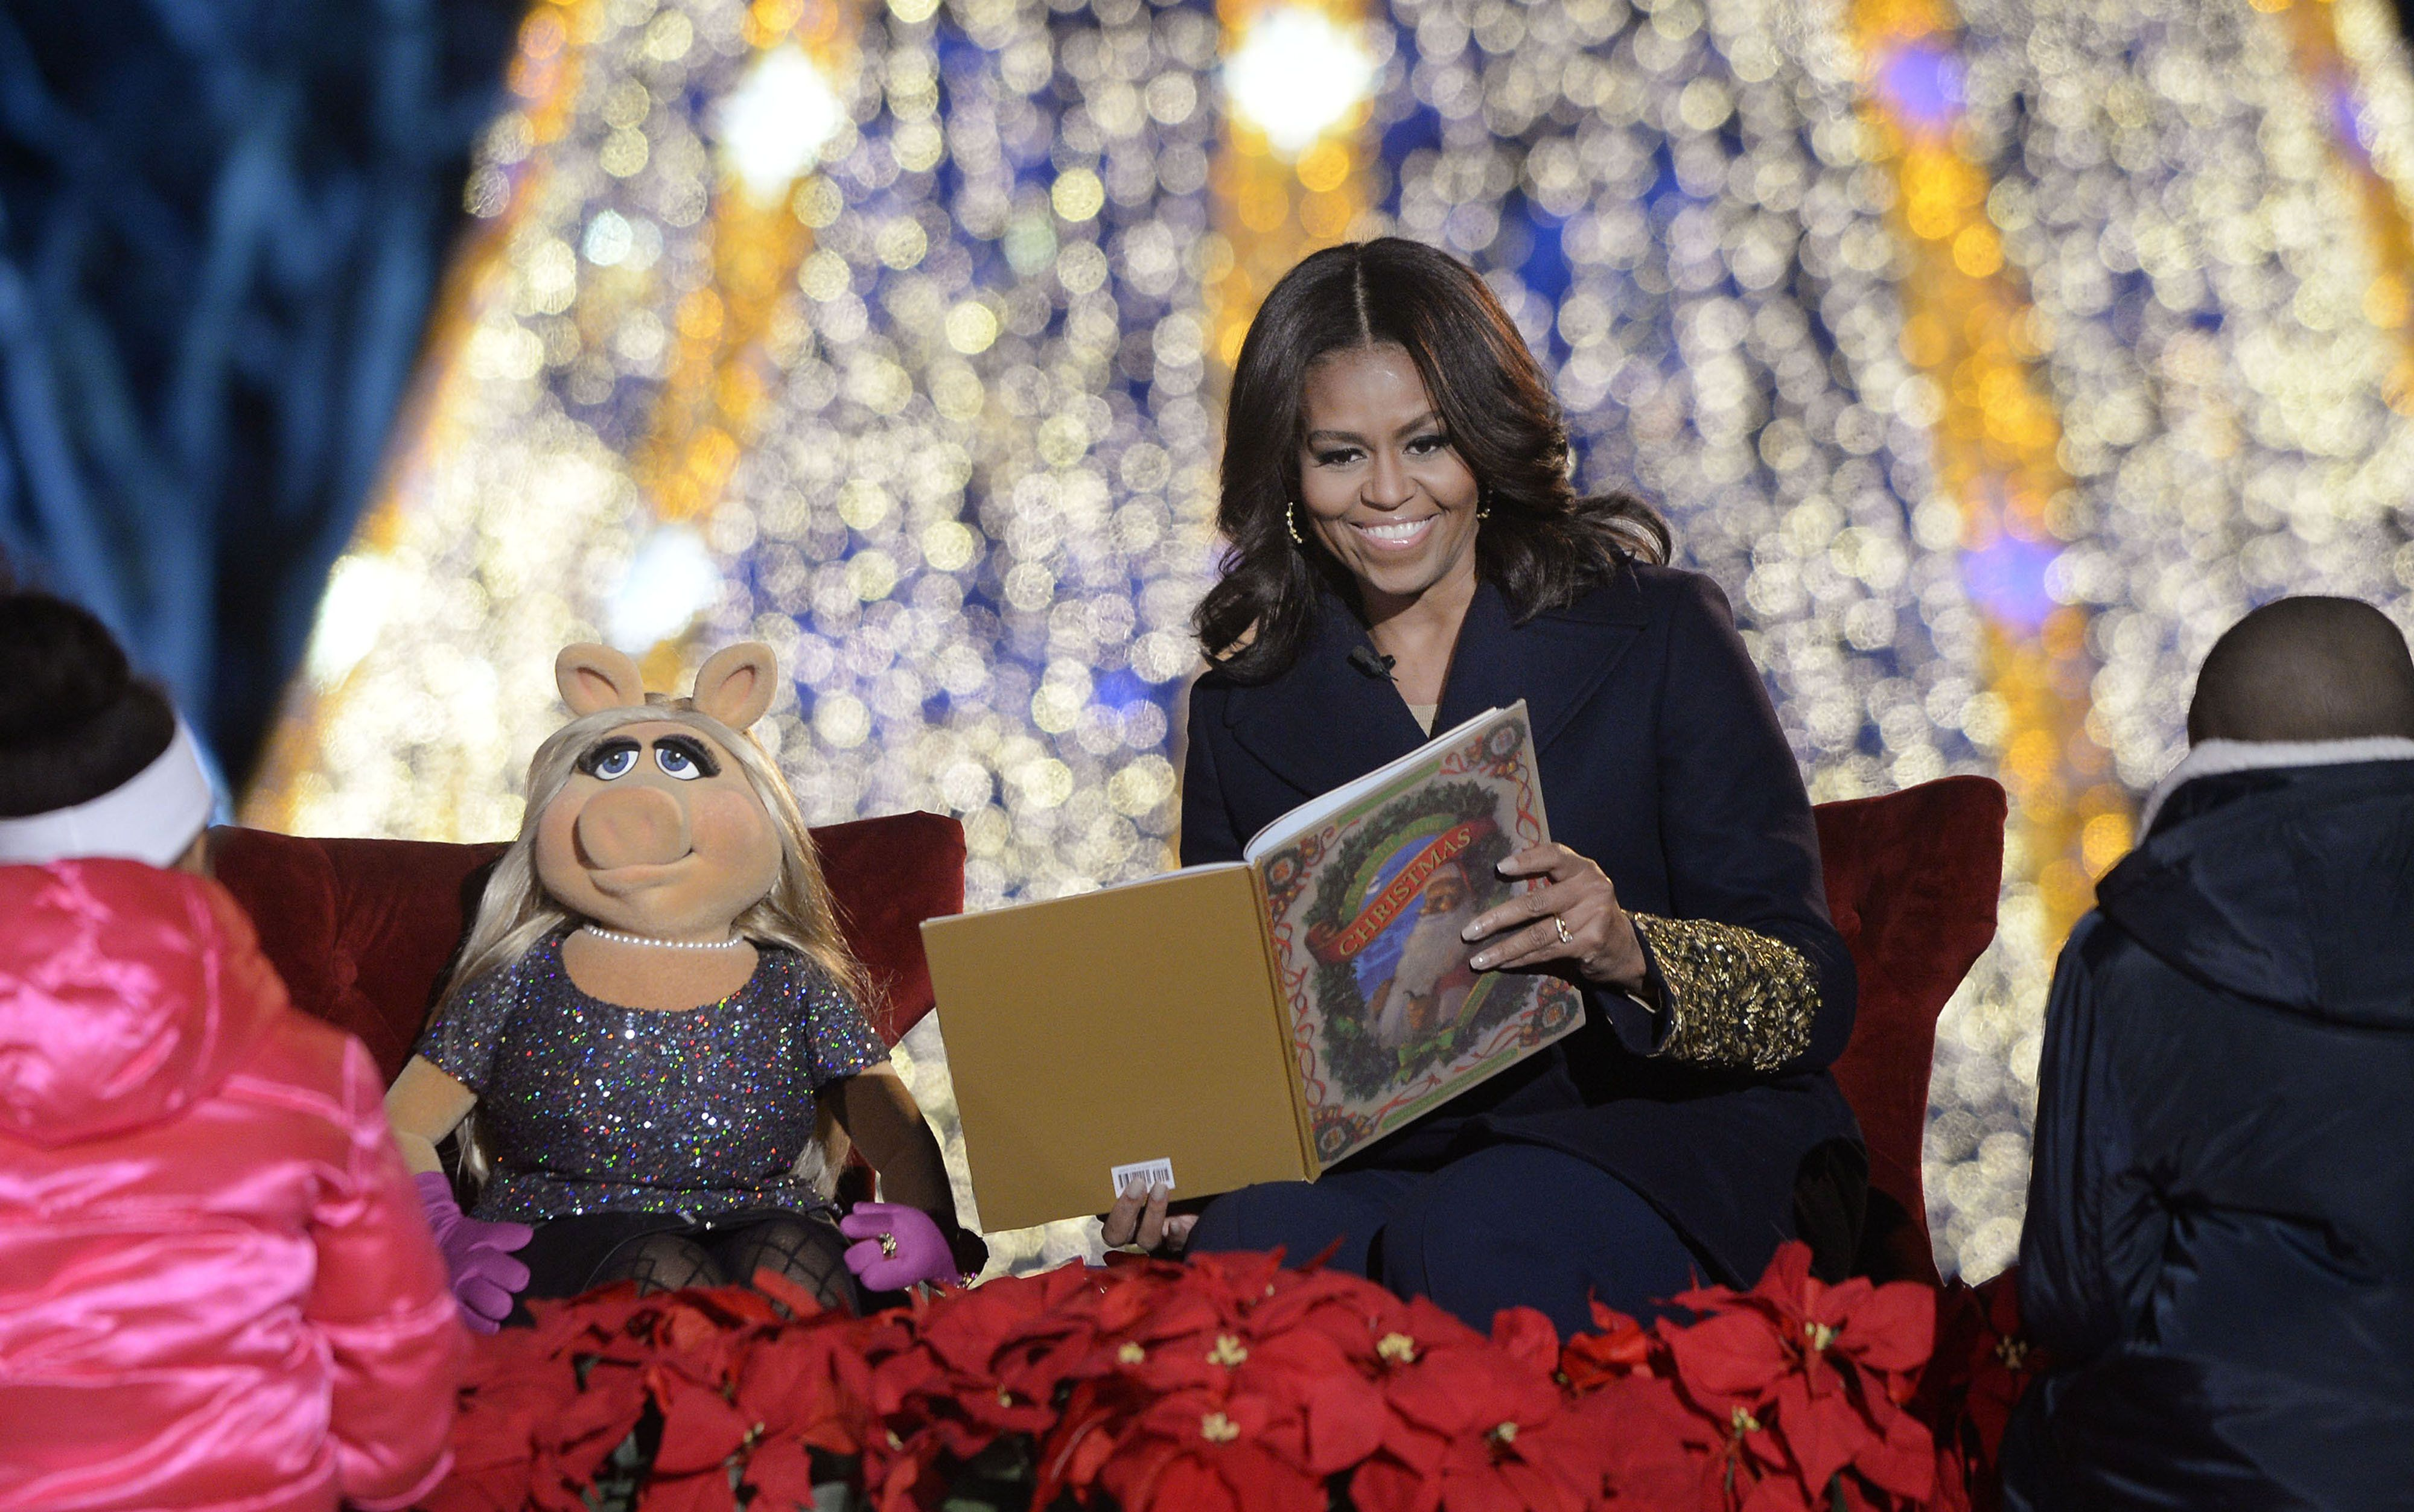 first lady Michelle Obama, right, and Muppets character Miss Piggy read a book to children during the National Christmas Tree lighting ceremony on the Ellipse near the White House in Washington, D.C., U.S., on Thursday, Dec. 3, 2015. In 1923 President Calvin Coolidge lit the first National Christmas Tree, a 48-foot balsam fir tree decorated with 2,500 electric bulbs in red, white and green. Photographer: Olivier Douliery/Bloomberg via Getty Images